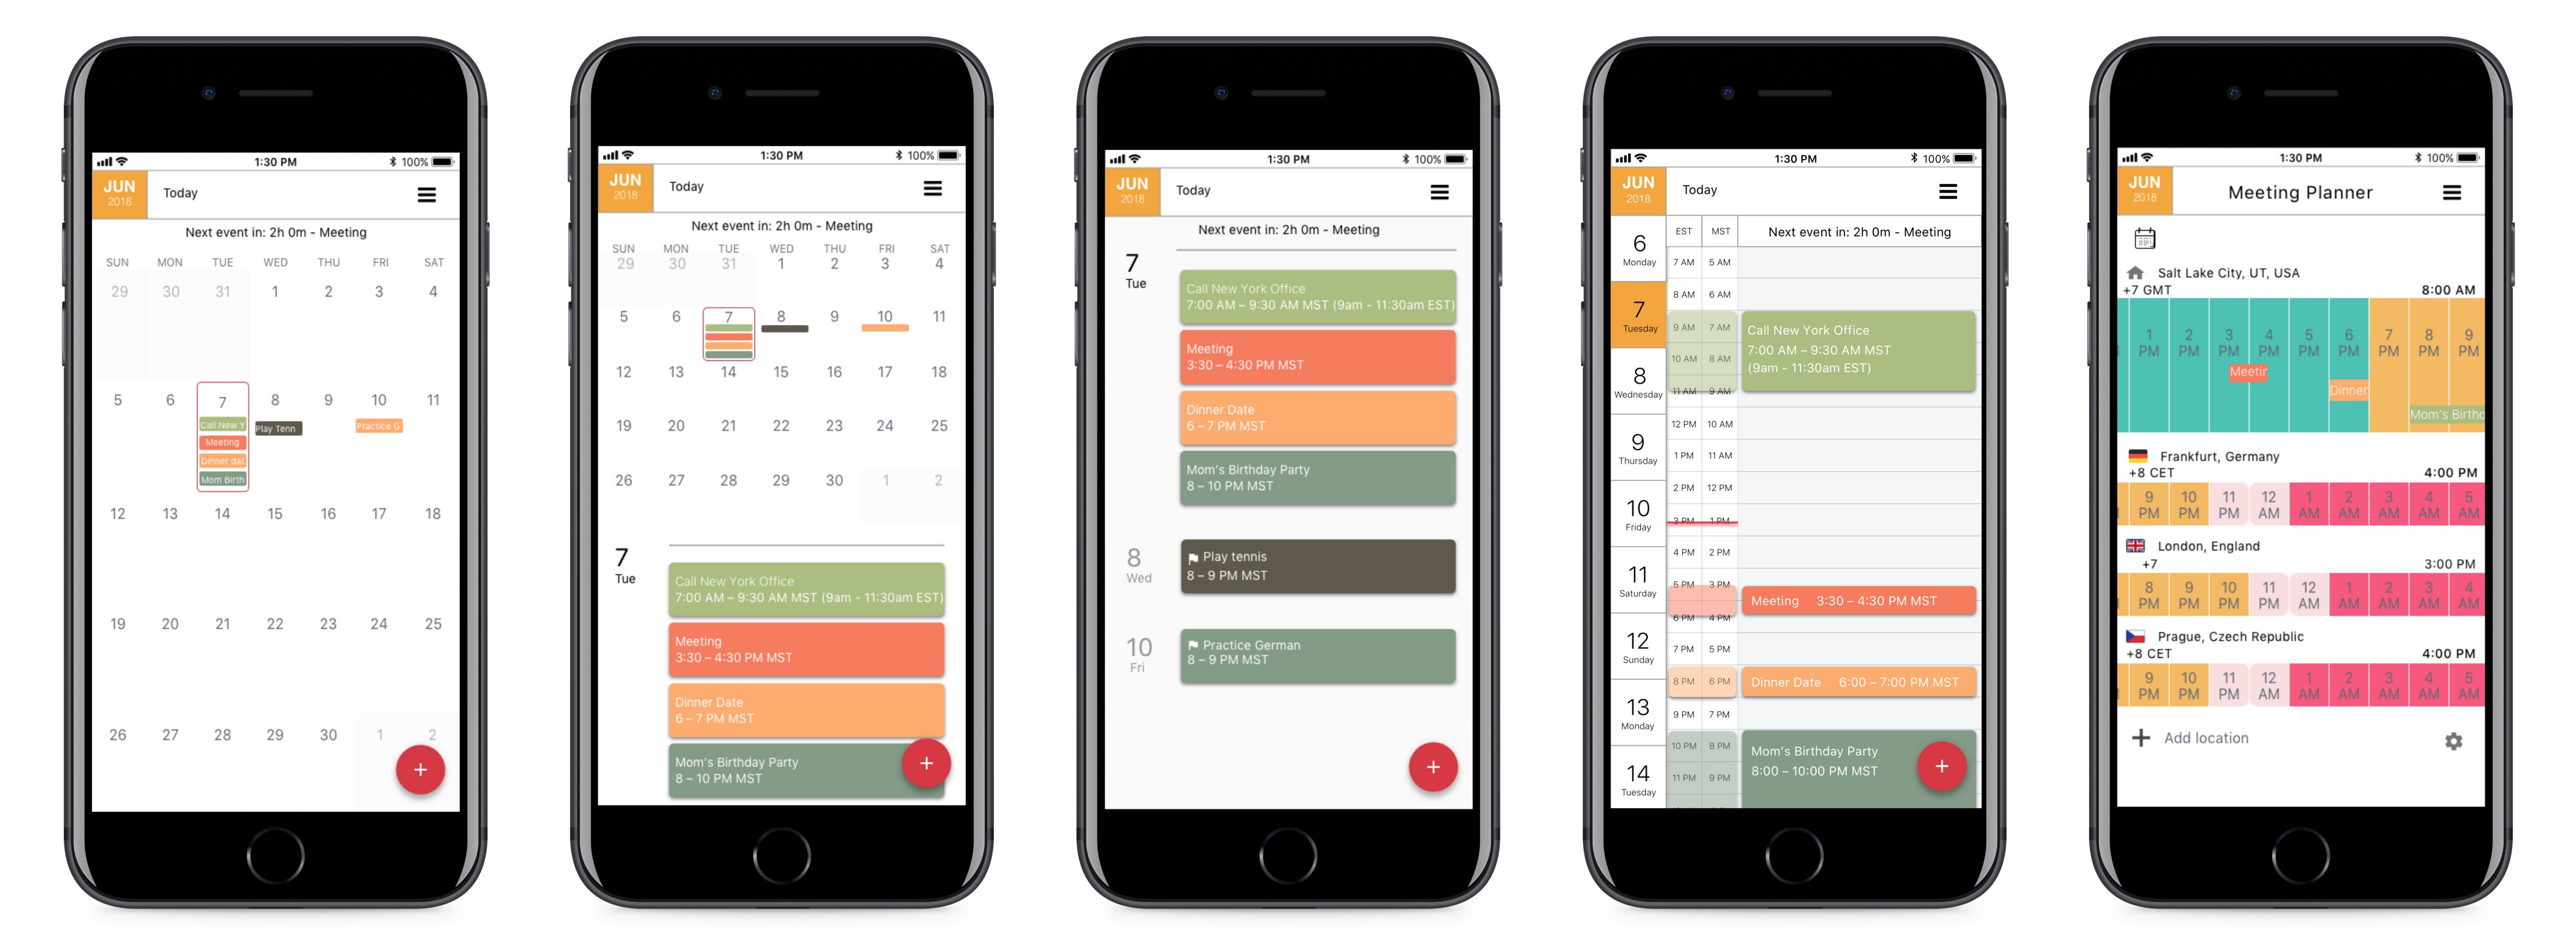 Case Study: Designing a calendar app to manage meetings